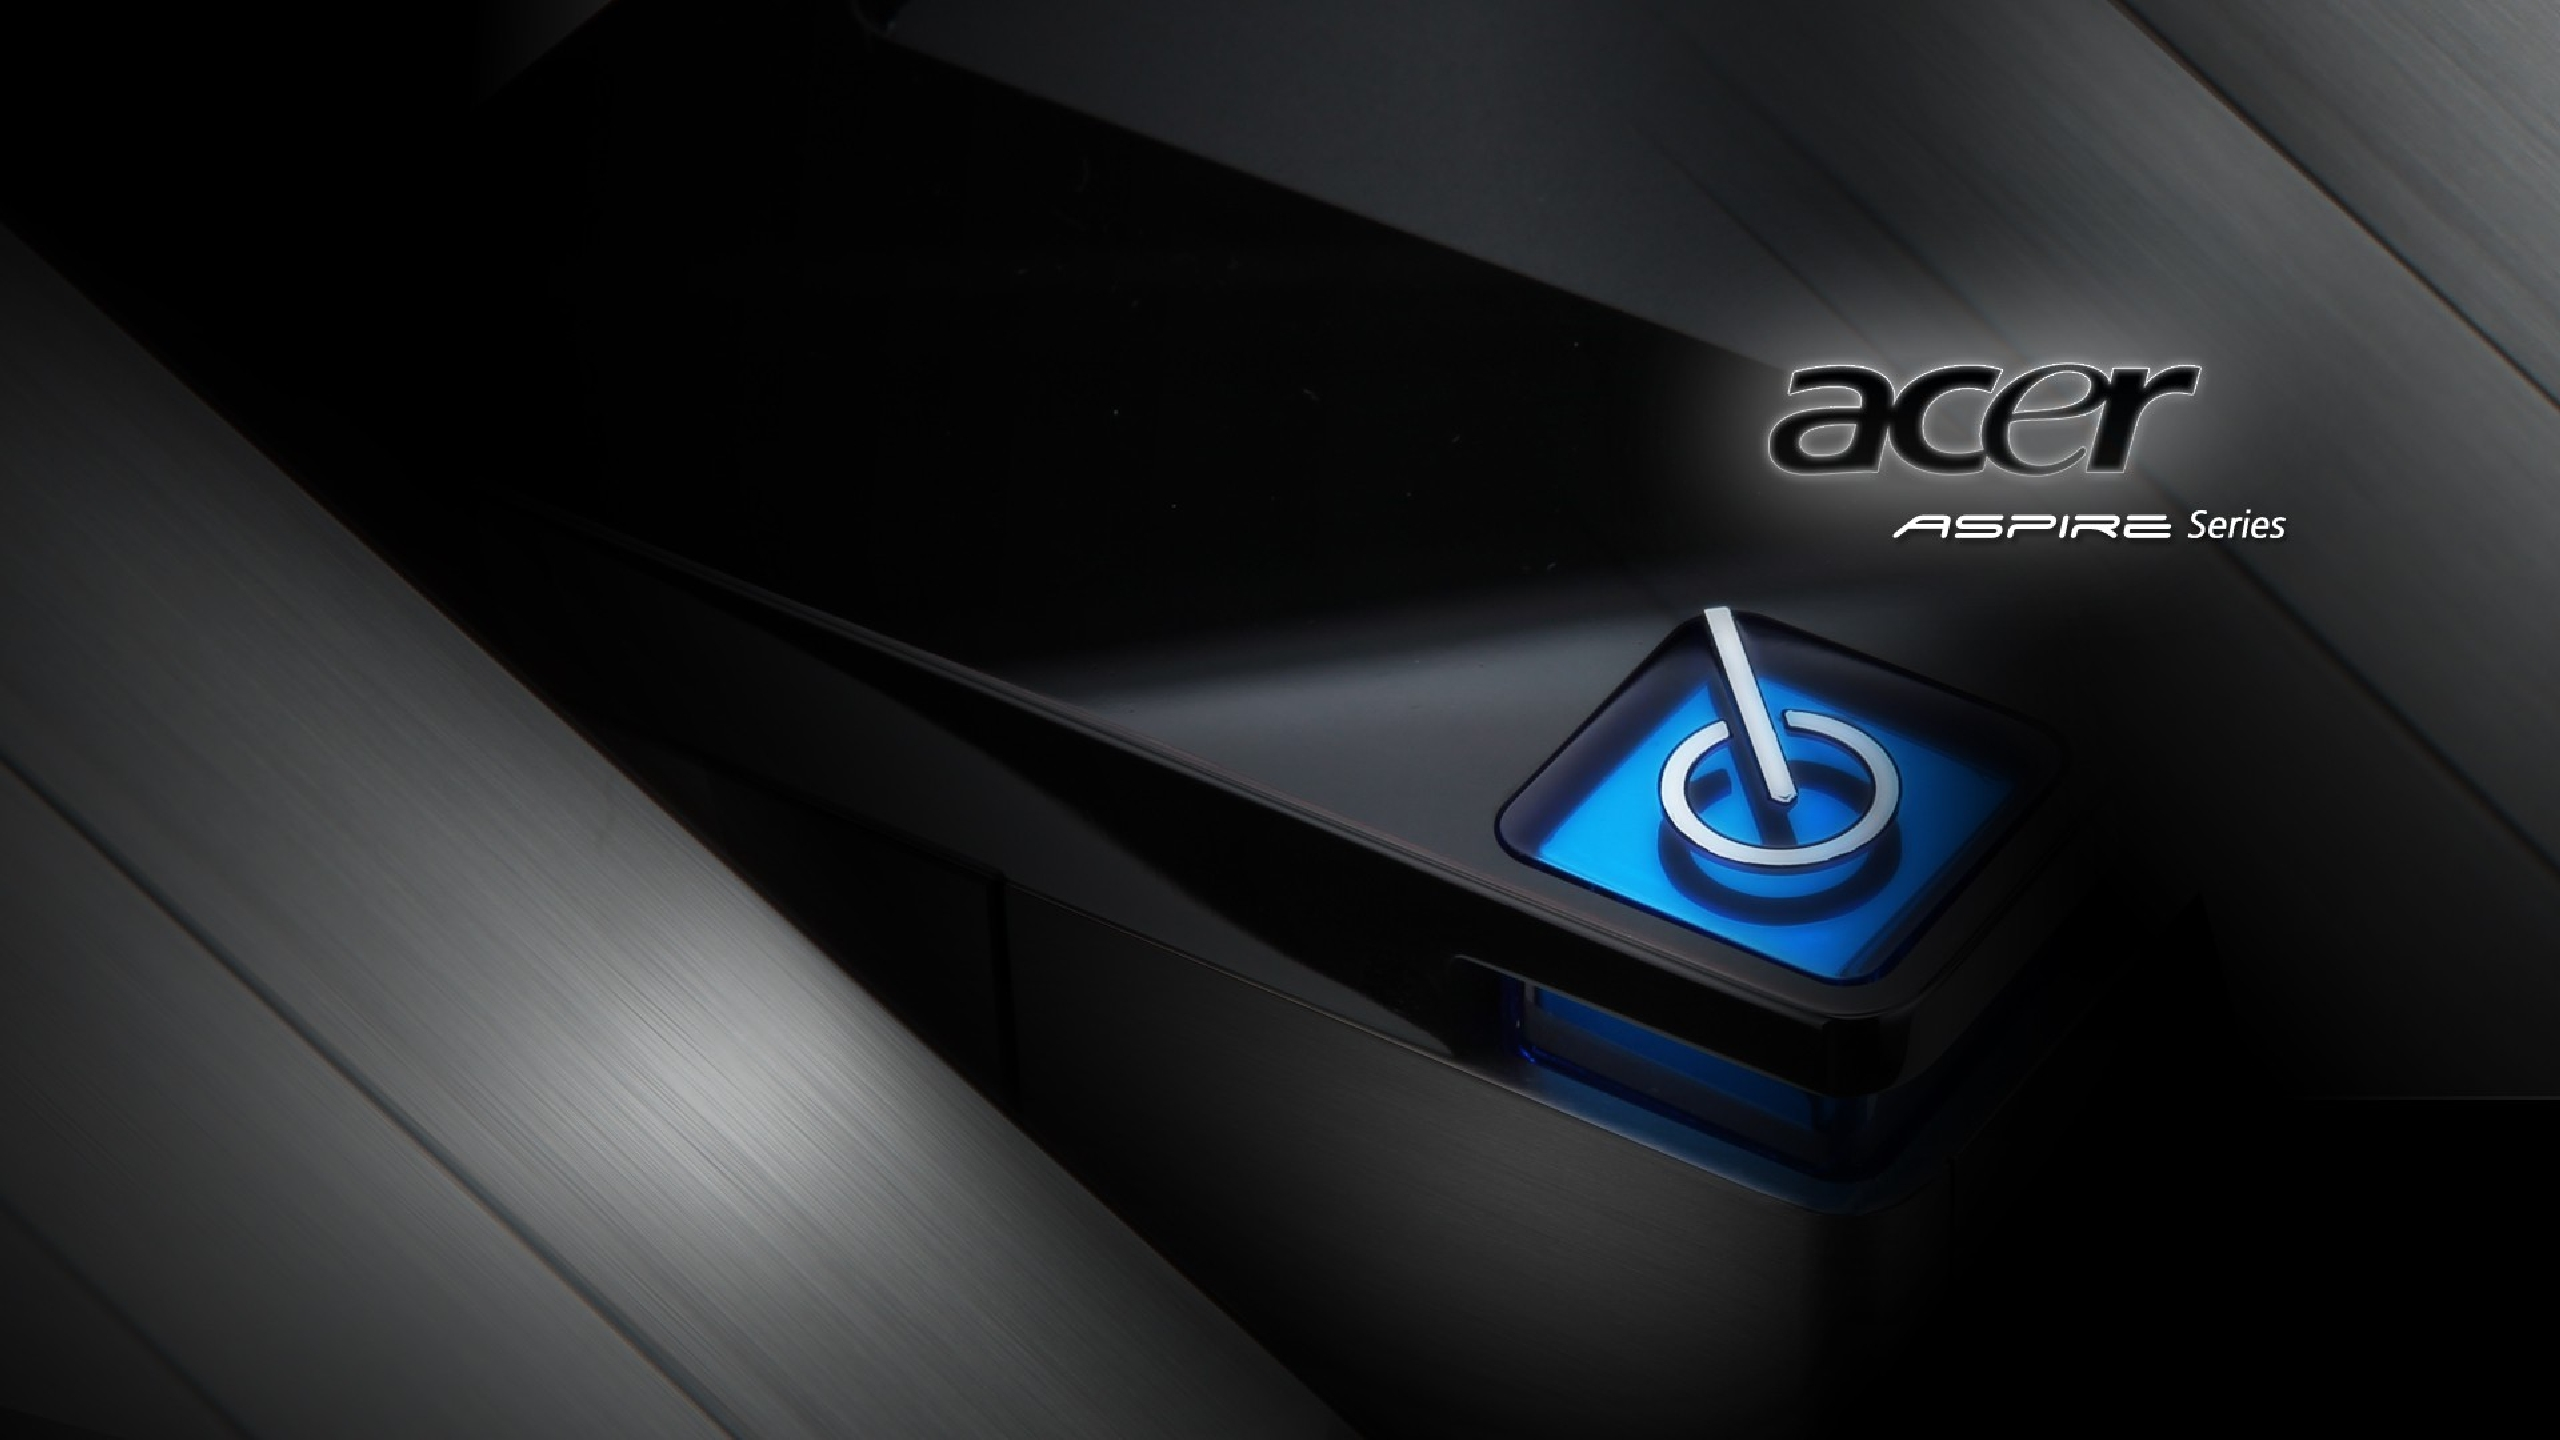 Asus Wallpapers Widescreen: Cool Acer Wallpapers